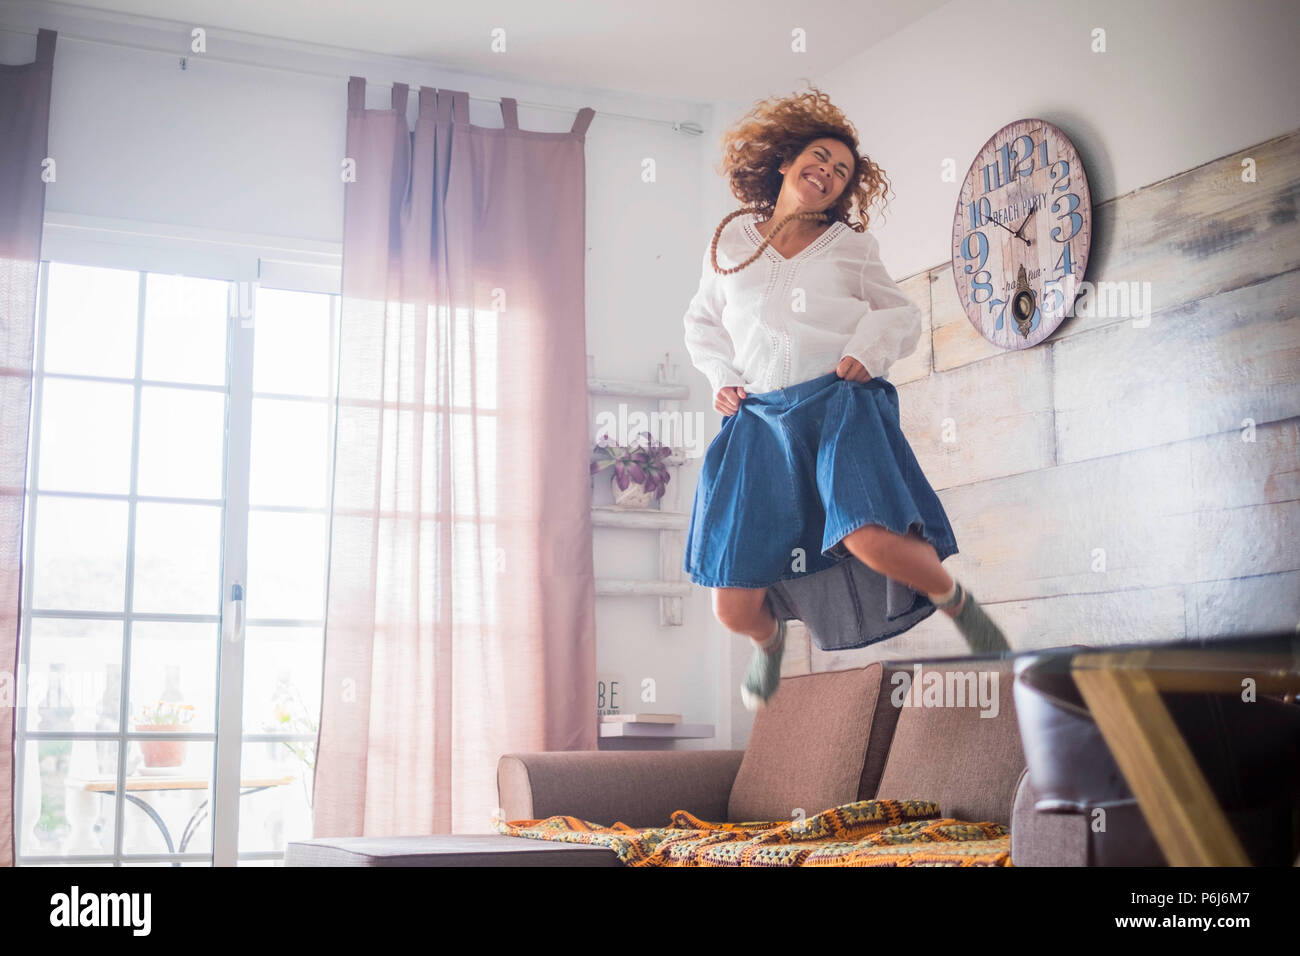 lonely crazy beautiful woman middle age jumping at home for satisfaction or victory. smile a lot and have funwith a big jump on the sofa. freedom and  - Stock Image